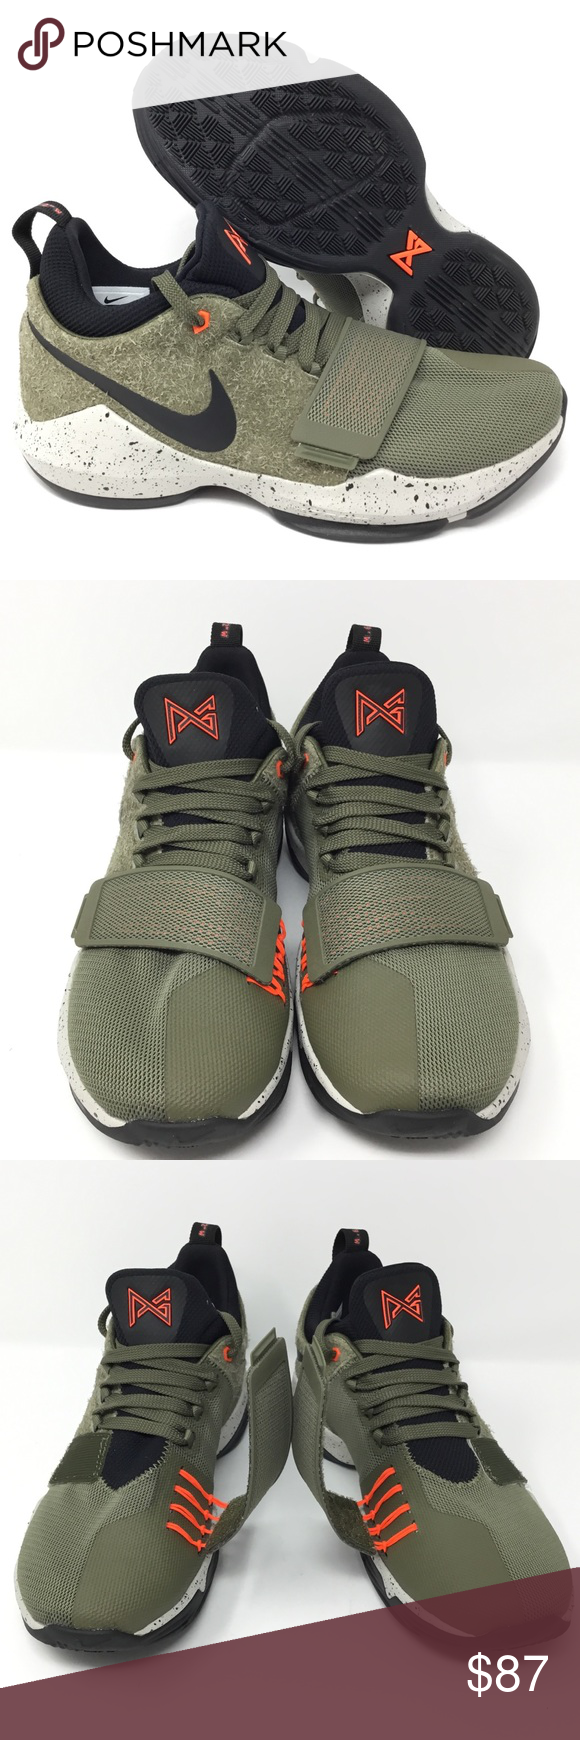 7675c86b2d86 Nike PG1 Elements Paul George Basketball Shoes Nike PG1 Elements Paul George  Basket Ball Shoes Size 7 Olive Green Black New Without Box 911085-200 Nike  ...